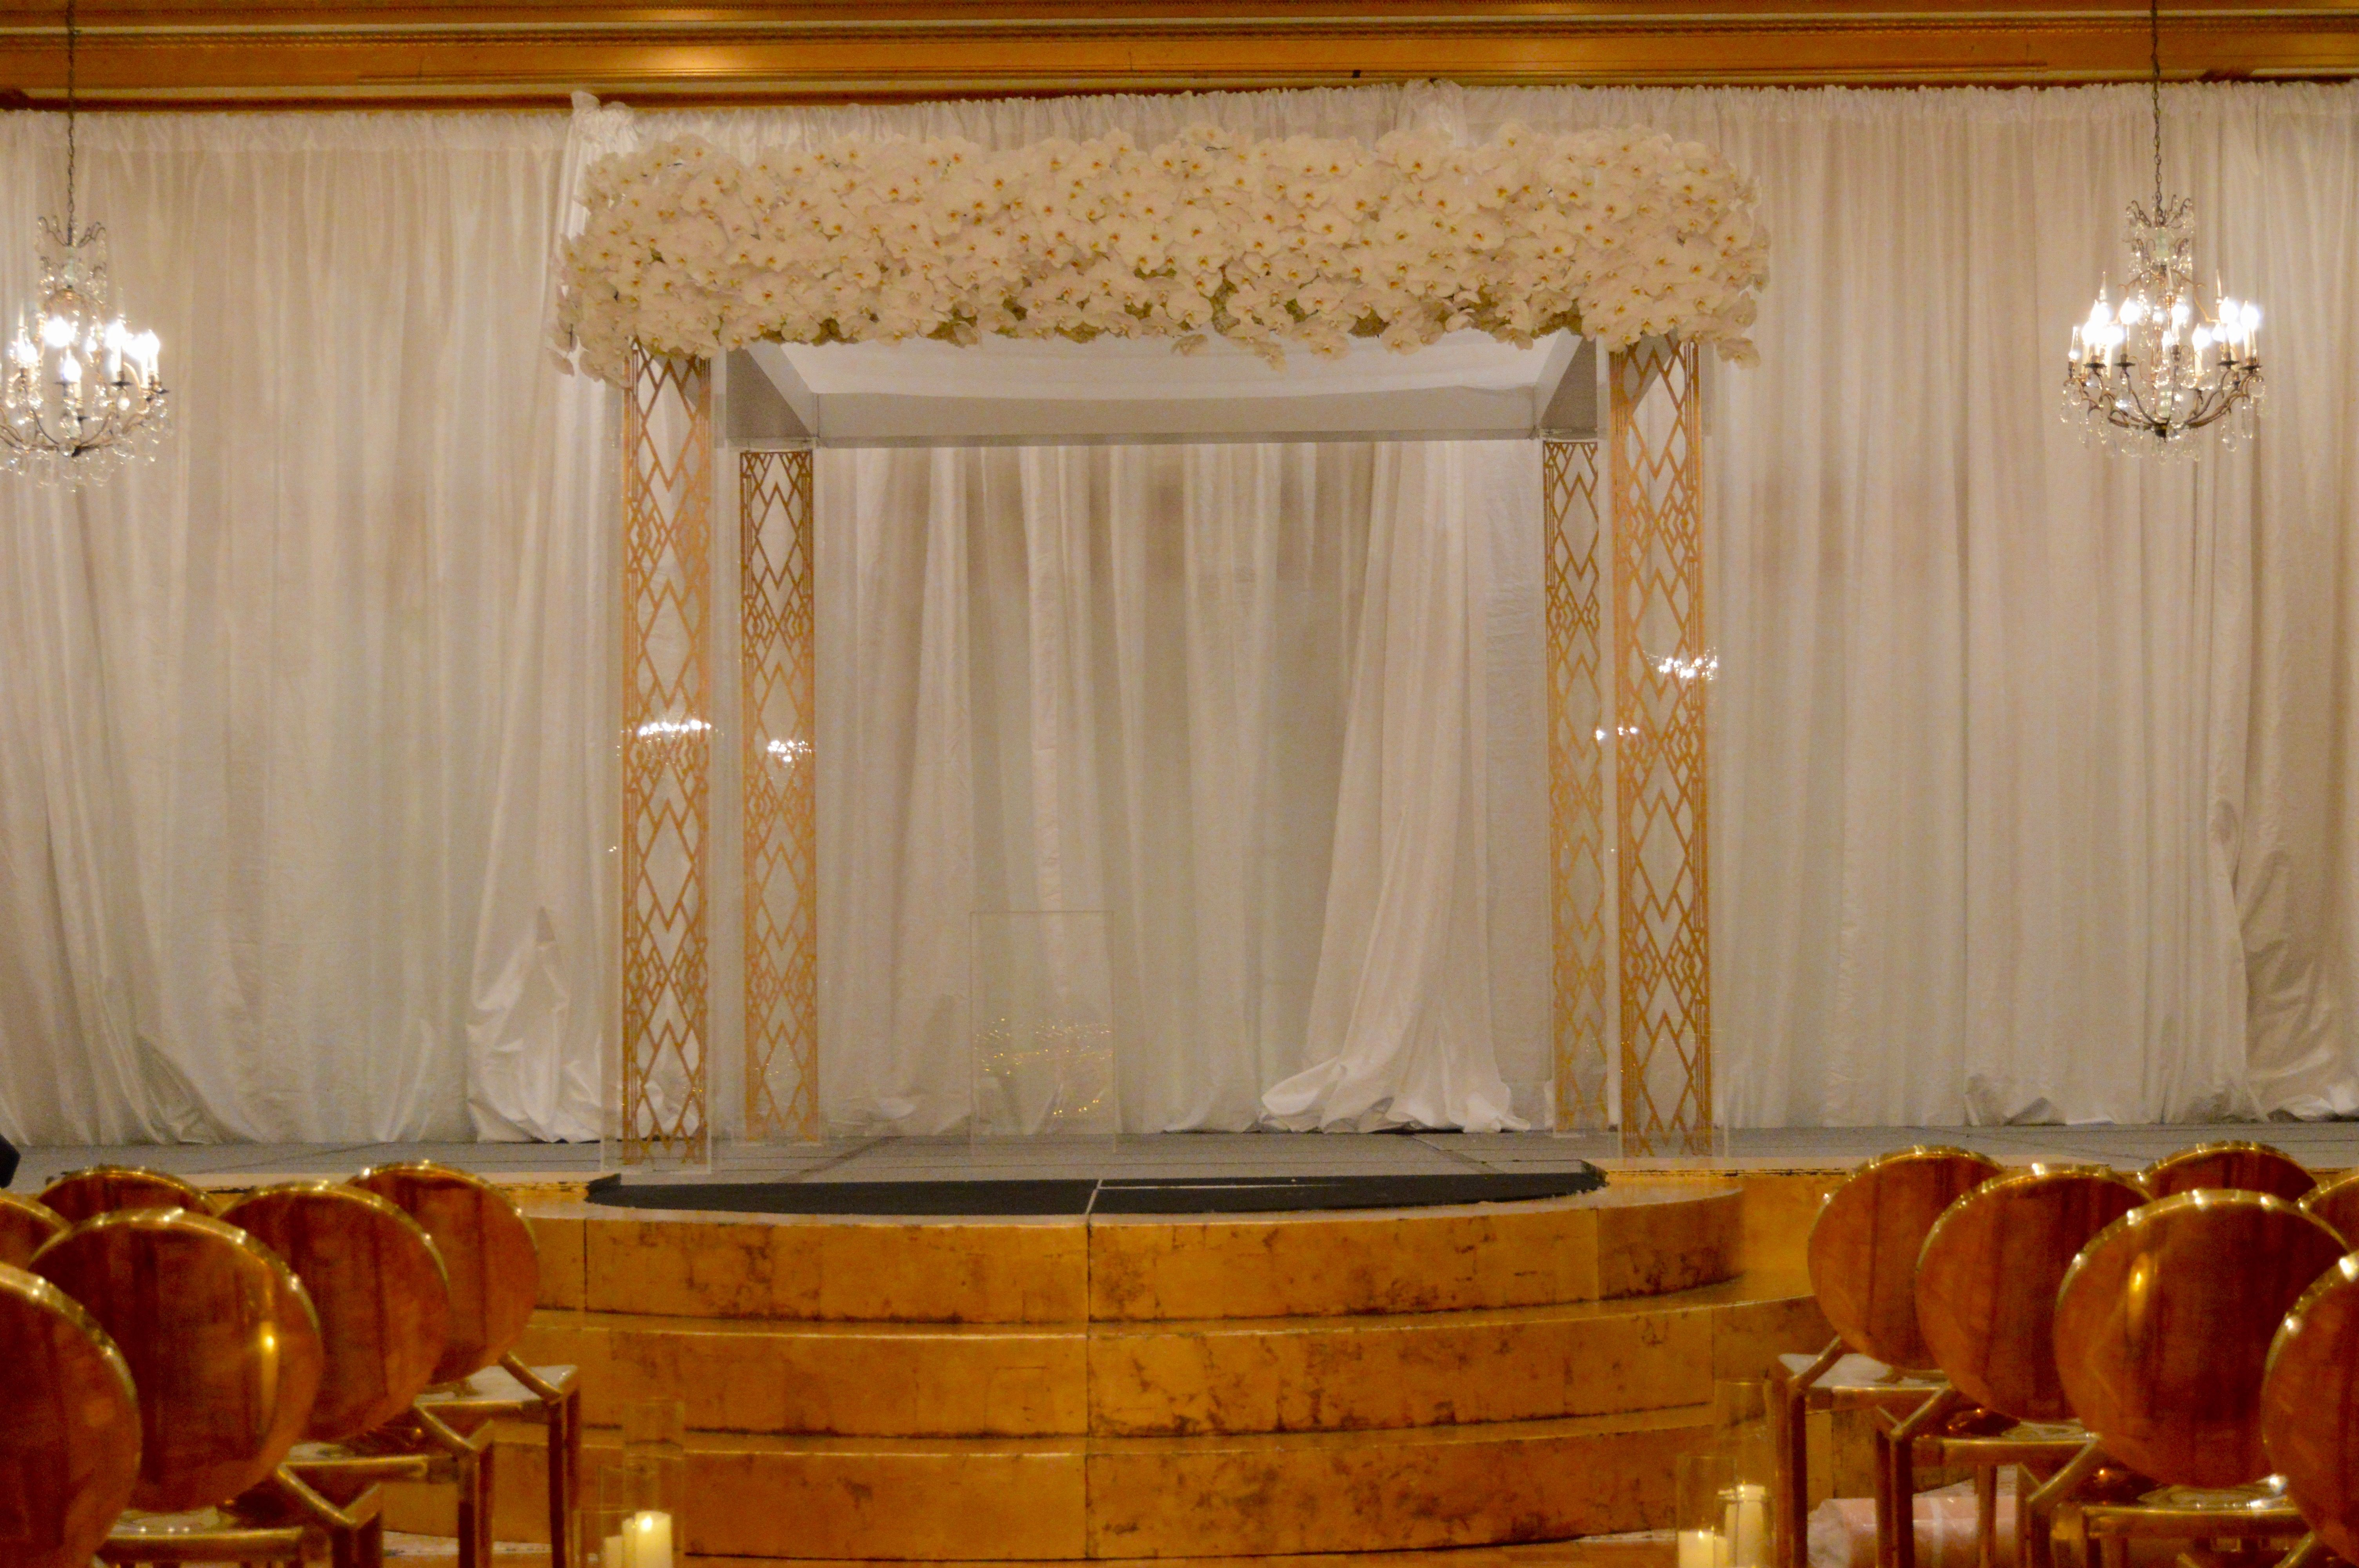 Acrylic let Chuppah with suspended art deco panels within the legs. Solid white phalenopsis orchid florals along the top. Flanked with golden round steps and our gorgeous Midas chairs. Decadence within the world famous Peabody!